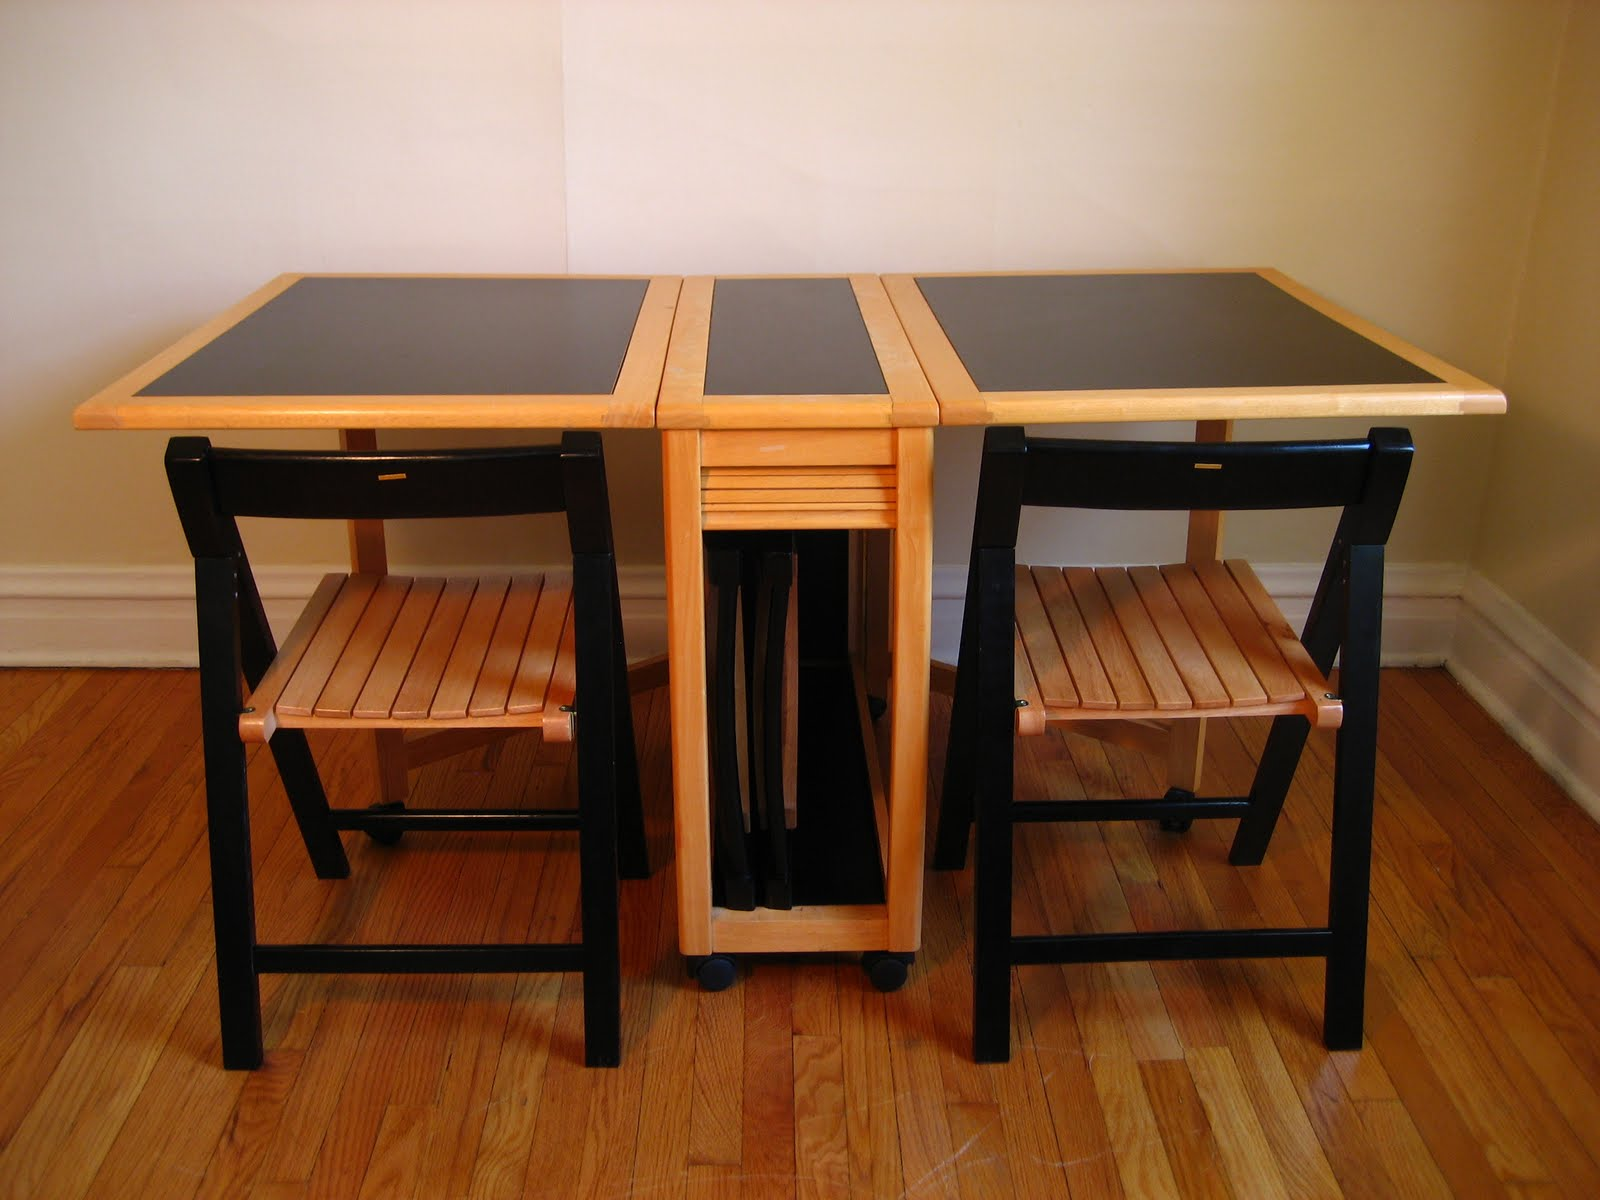 Folding Table And Chair Set One Half With Ottoman Flatout Design March 2010